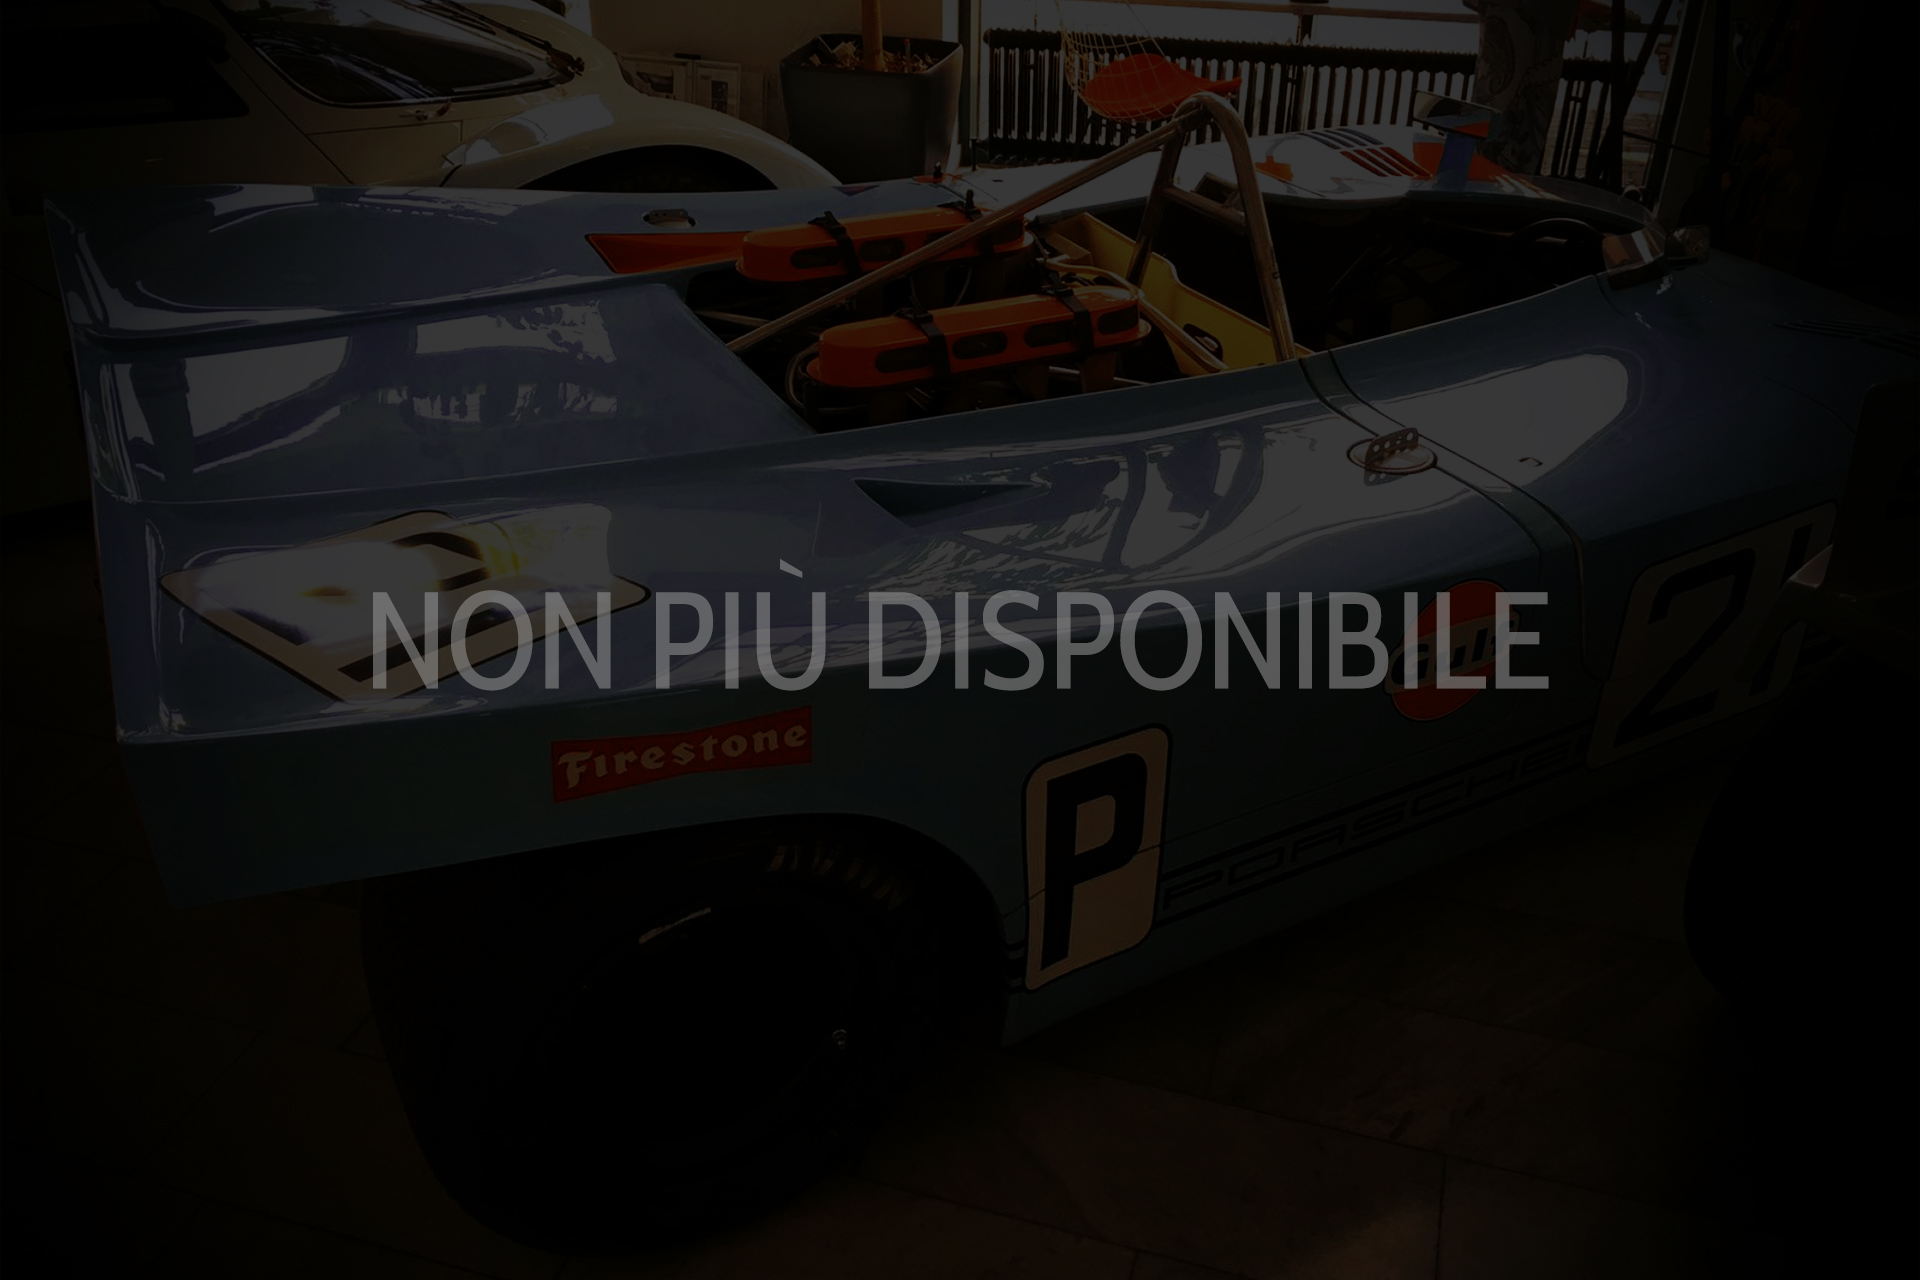 1970 Porsche 908/03 no longer available Ruote Leggendarie